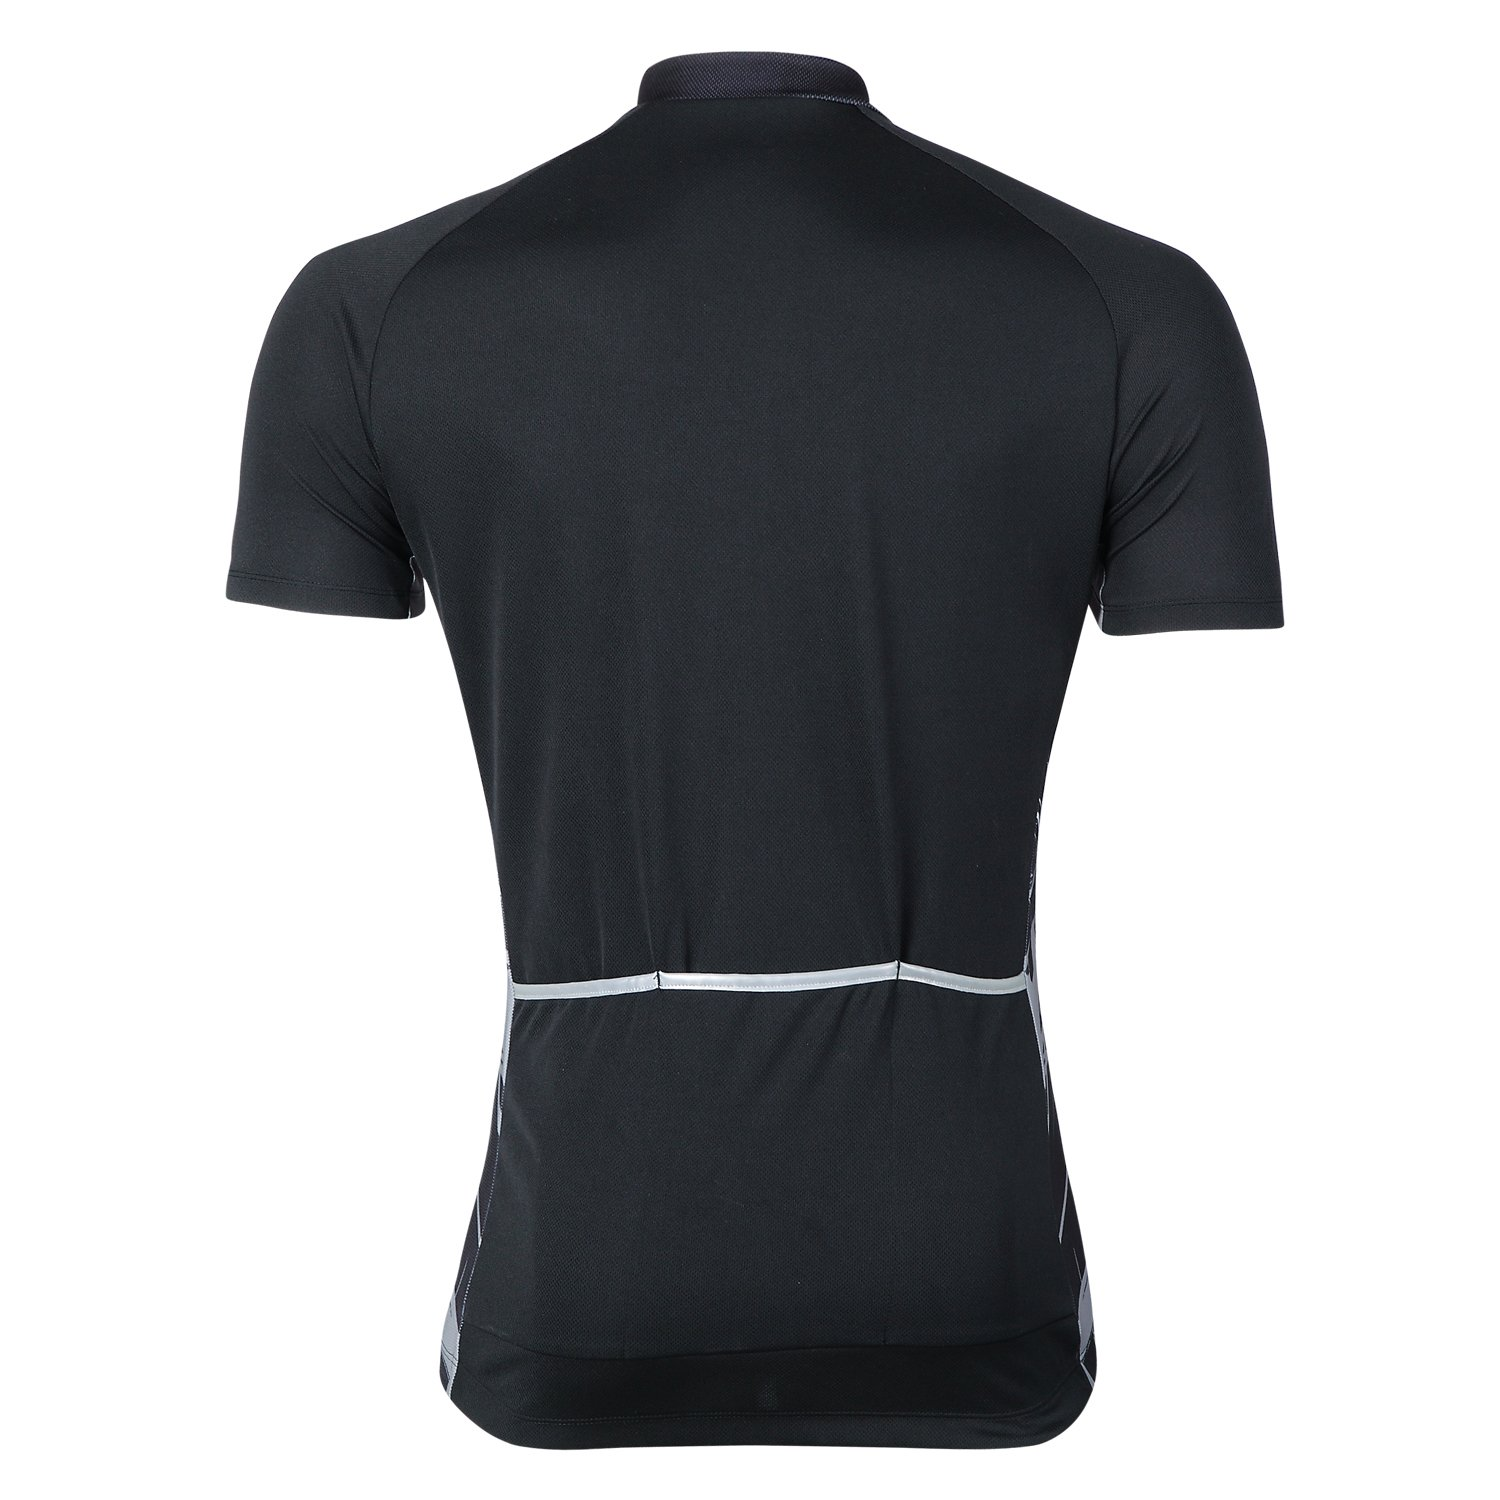 Men/'s Black Bike Cycling Jerseys Short Sleeve Bicycle Tops Outfits Shirt Pockets